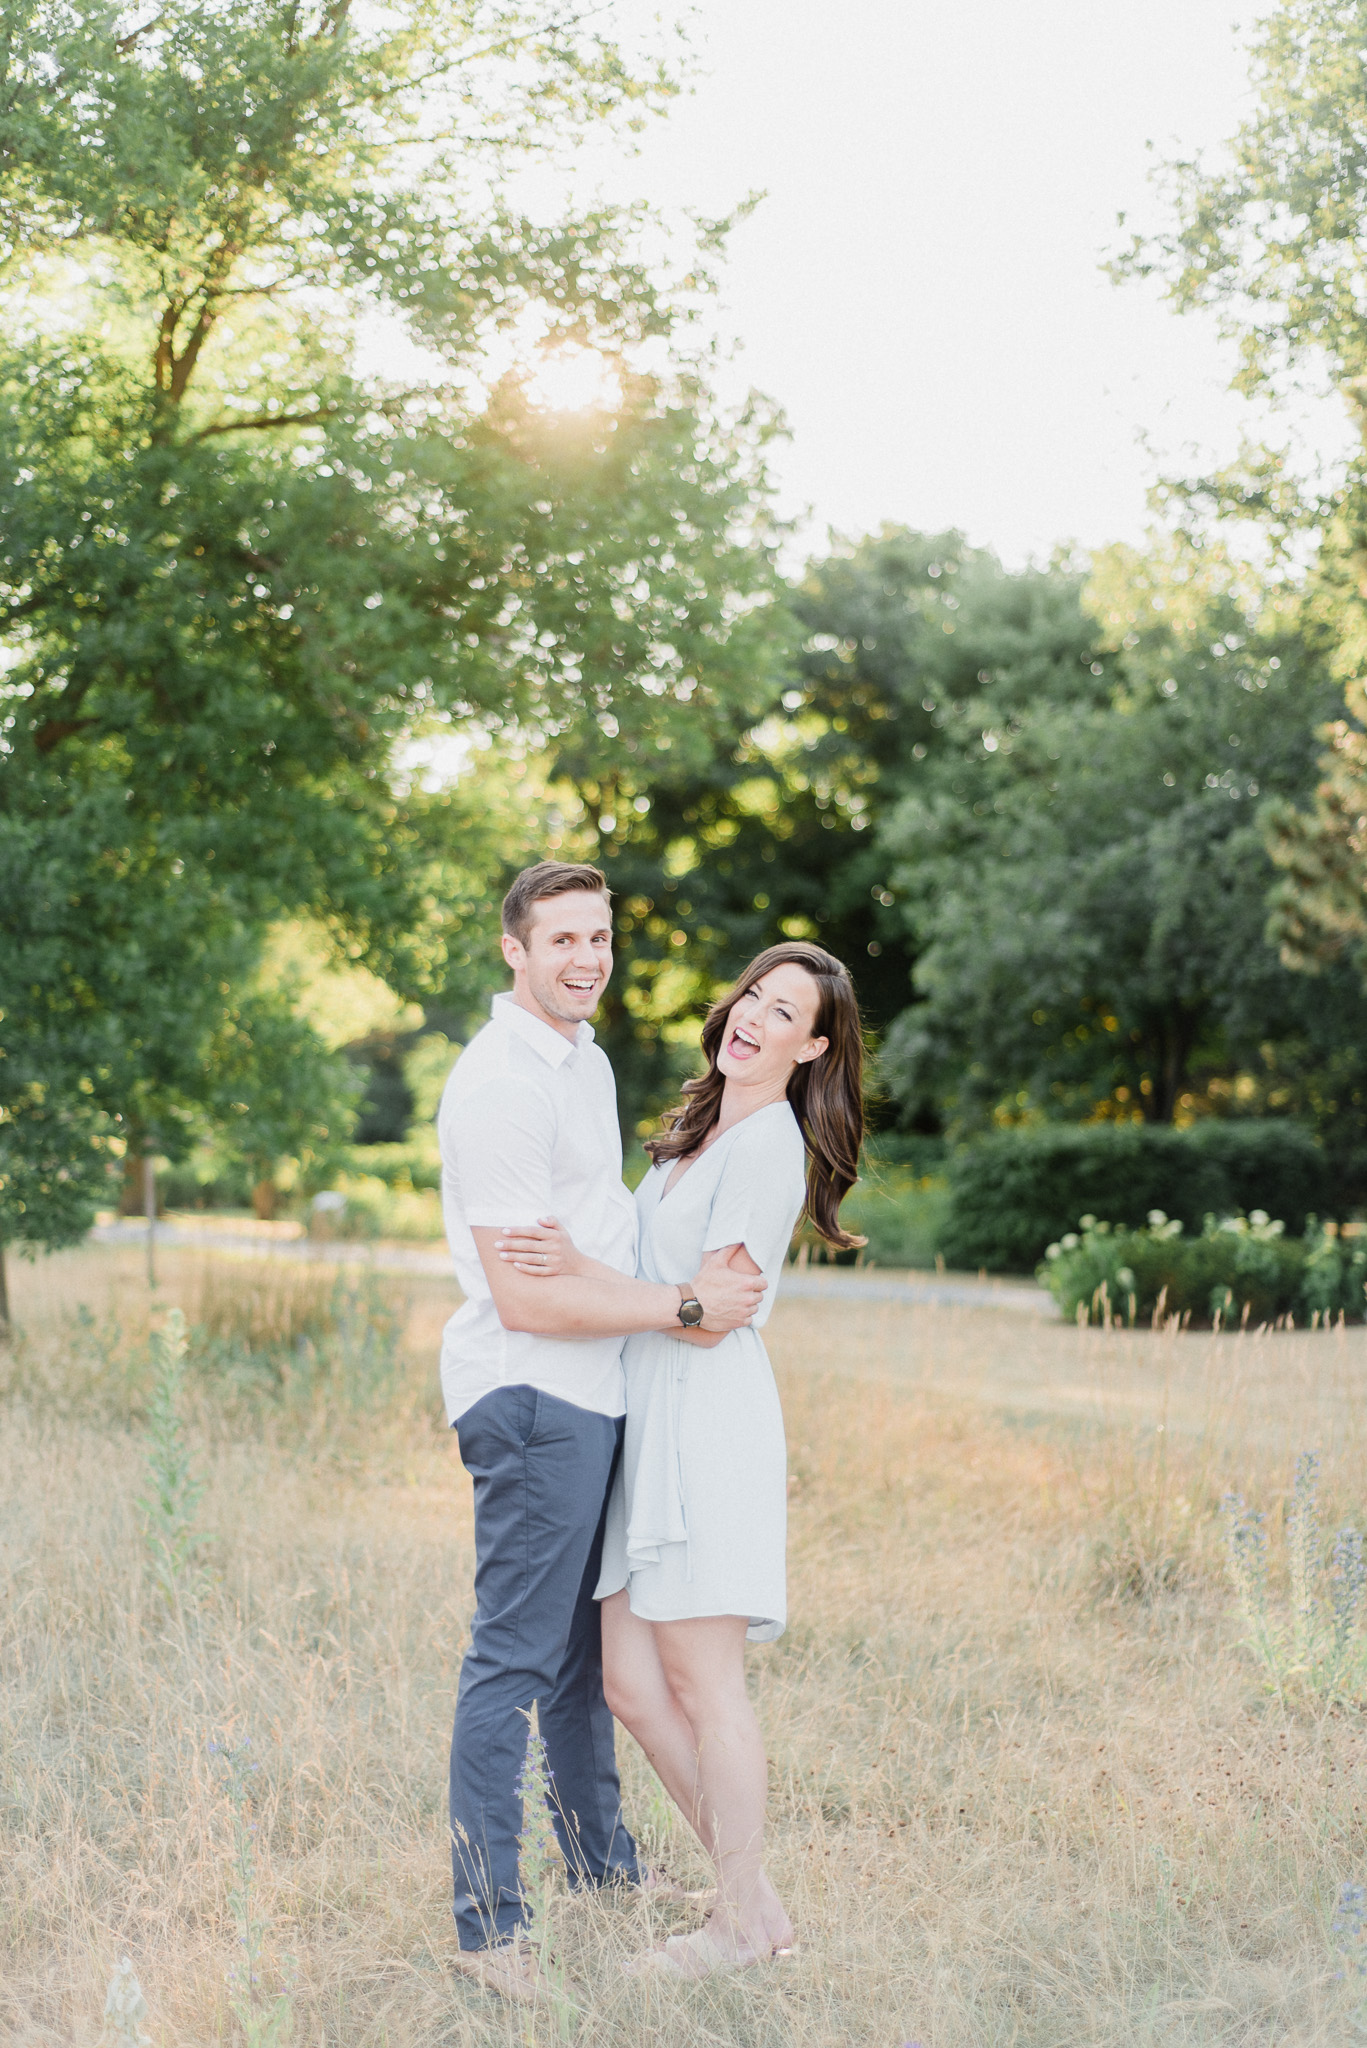 Sunnidale Park engagement photos by Jenn Kavanagh Photography